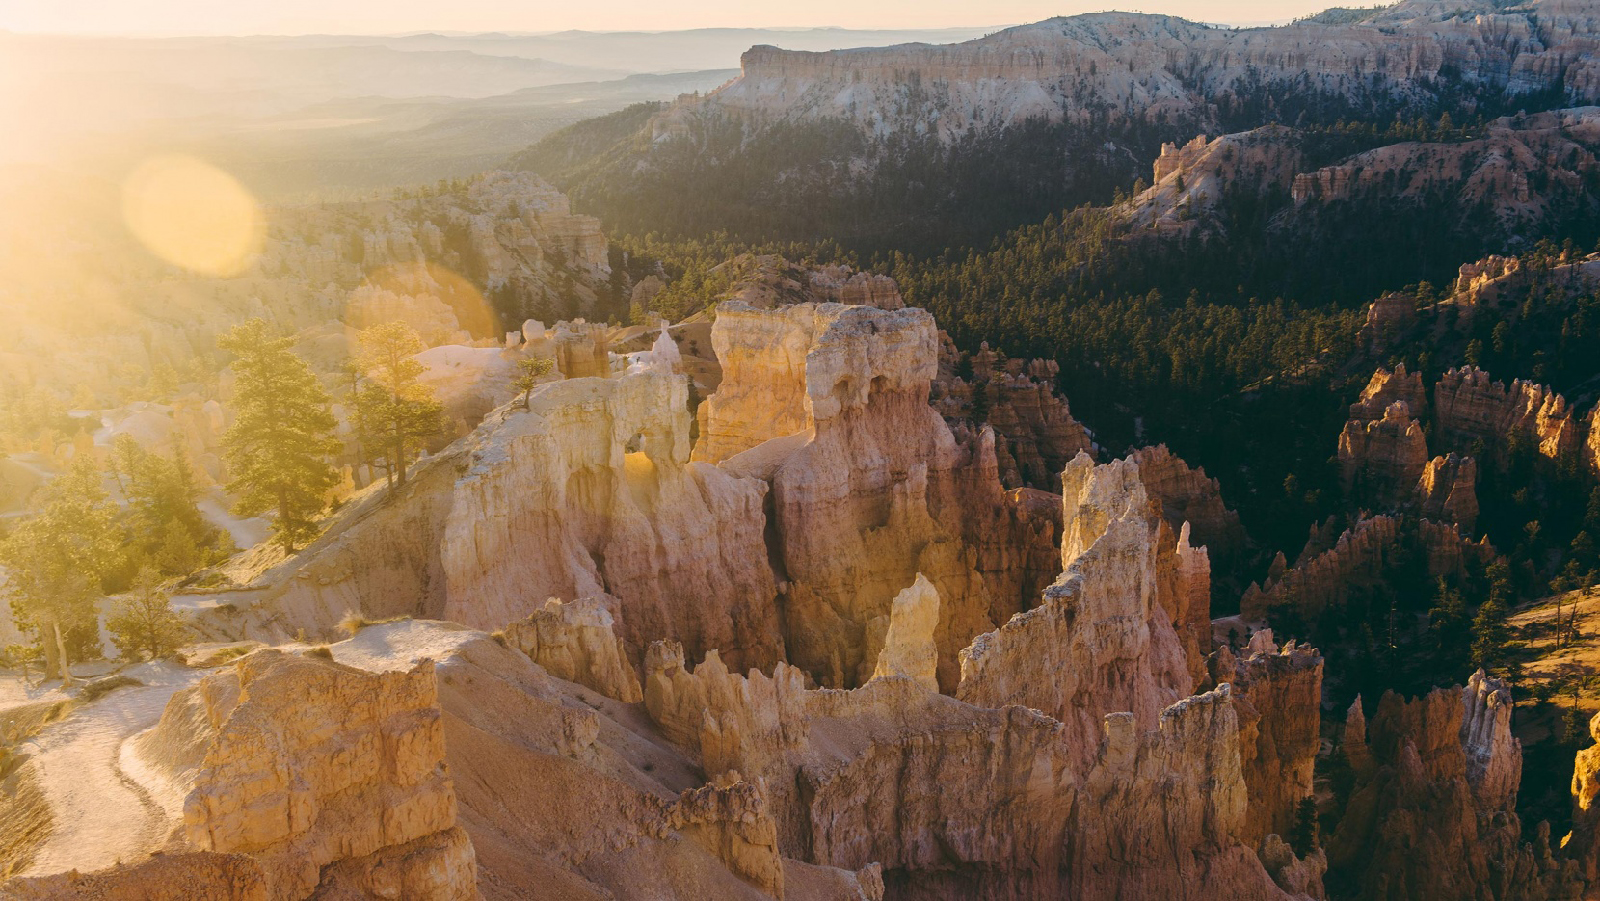 p1_the_great_wide_open_julian_bialowas_bryce_canyon_national_park_united_states_yatzer